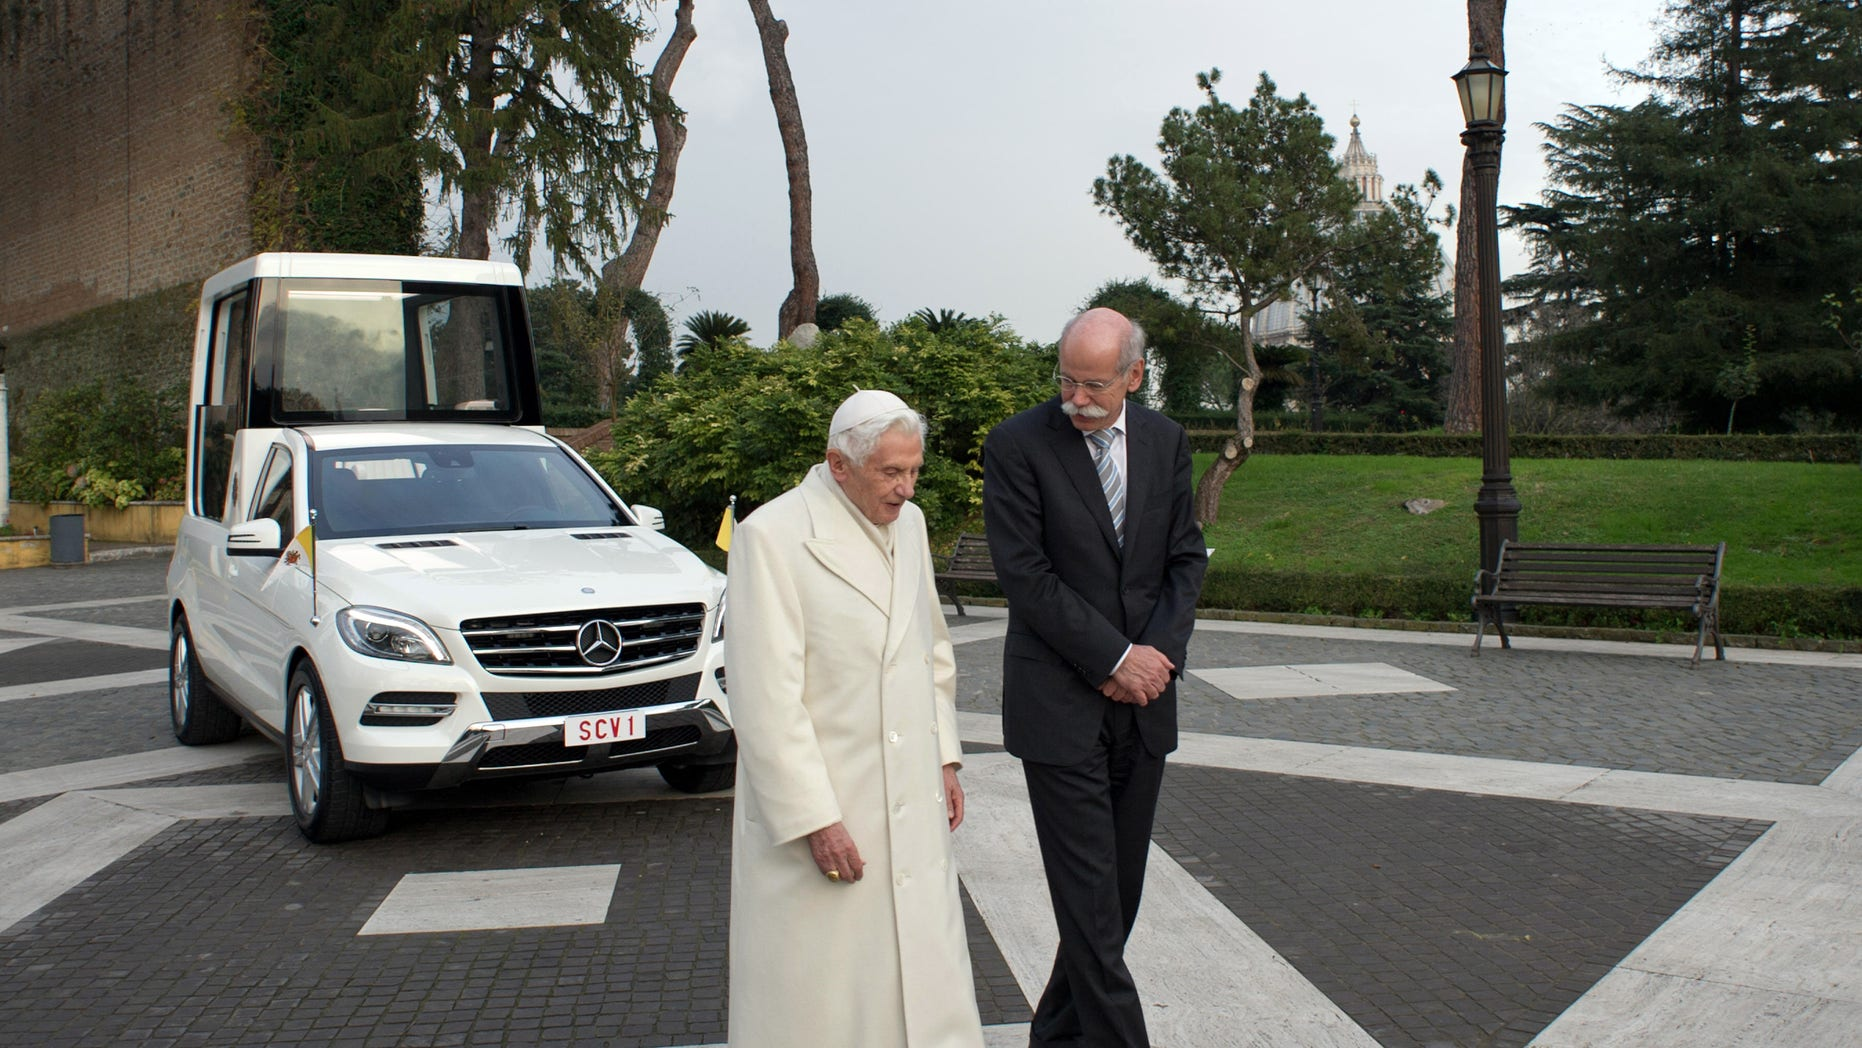 Dec. 7, 2012 - Pope Benedict XVI and Mercedes Benz CEO Dieter Zetsche walk past the new popemobile presented to the Pontiff at the Vatican.